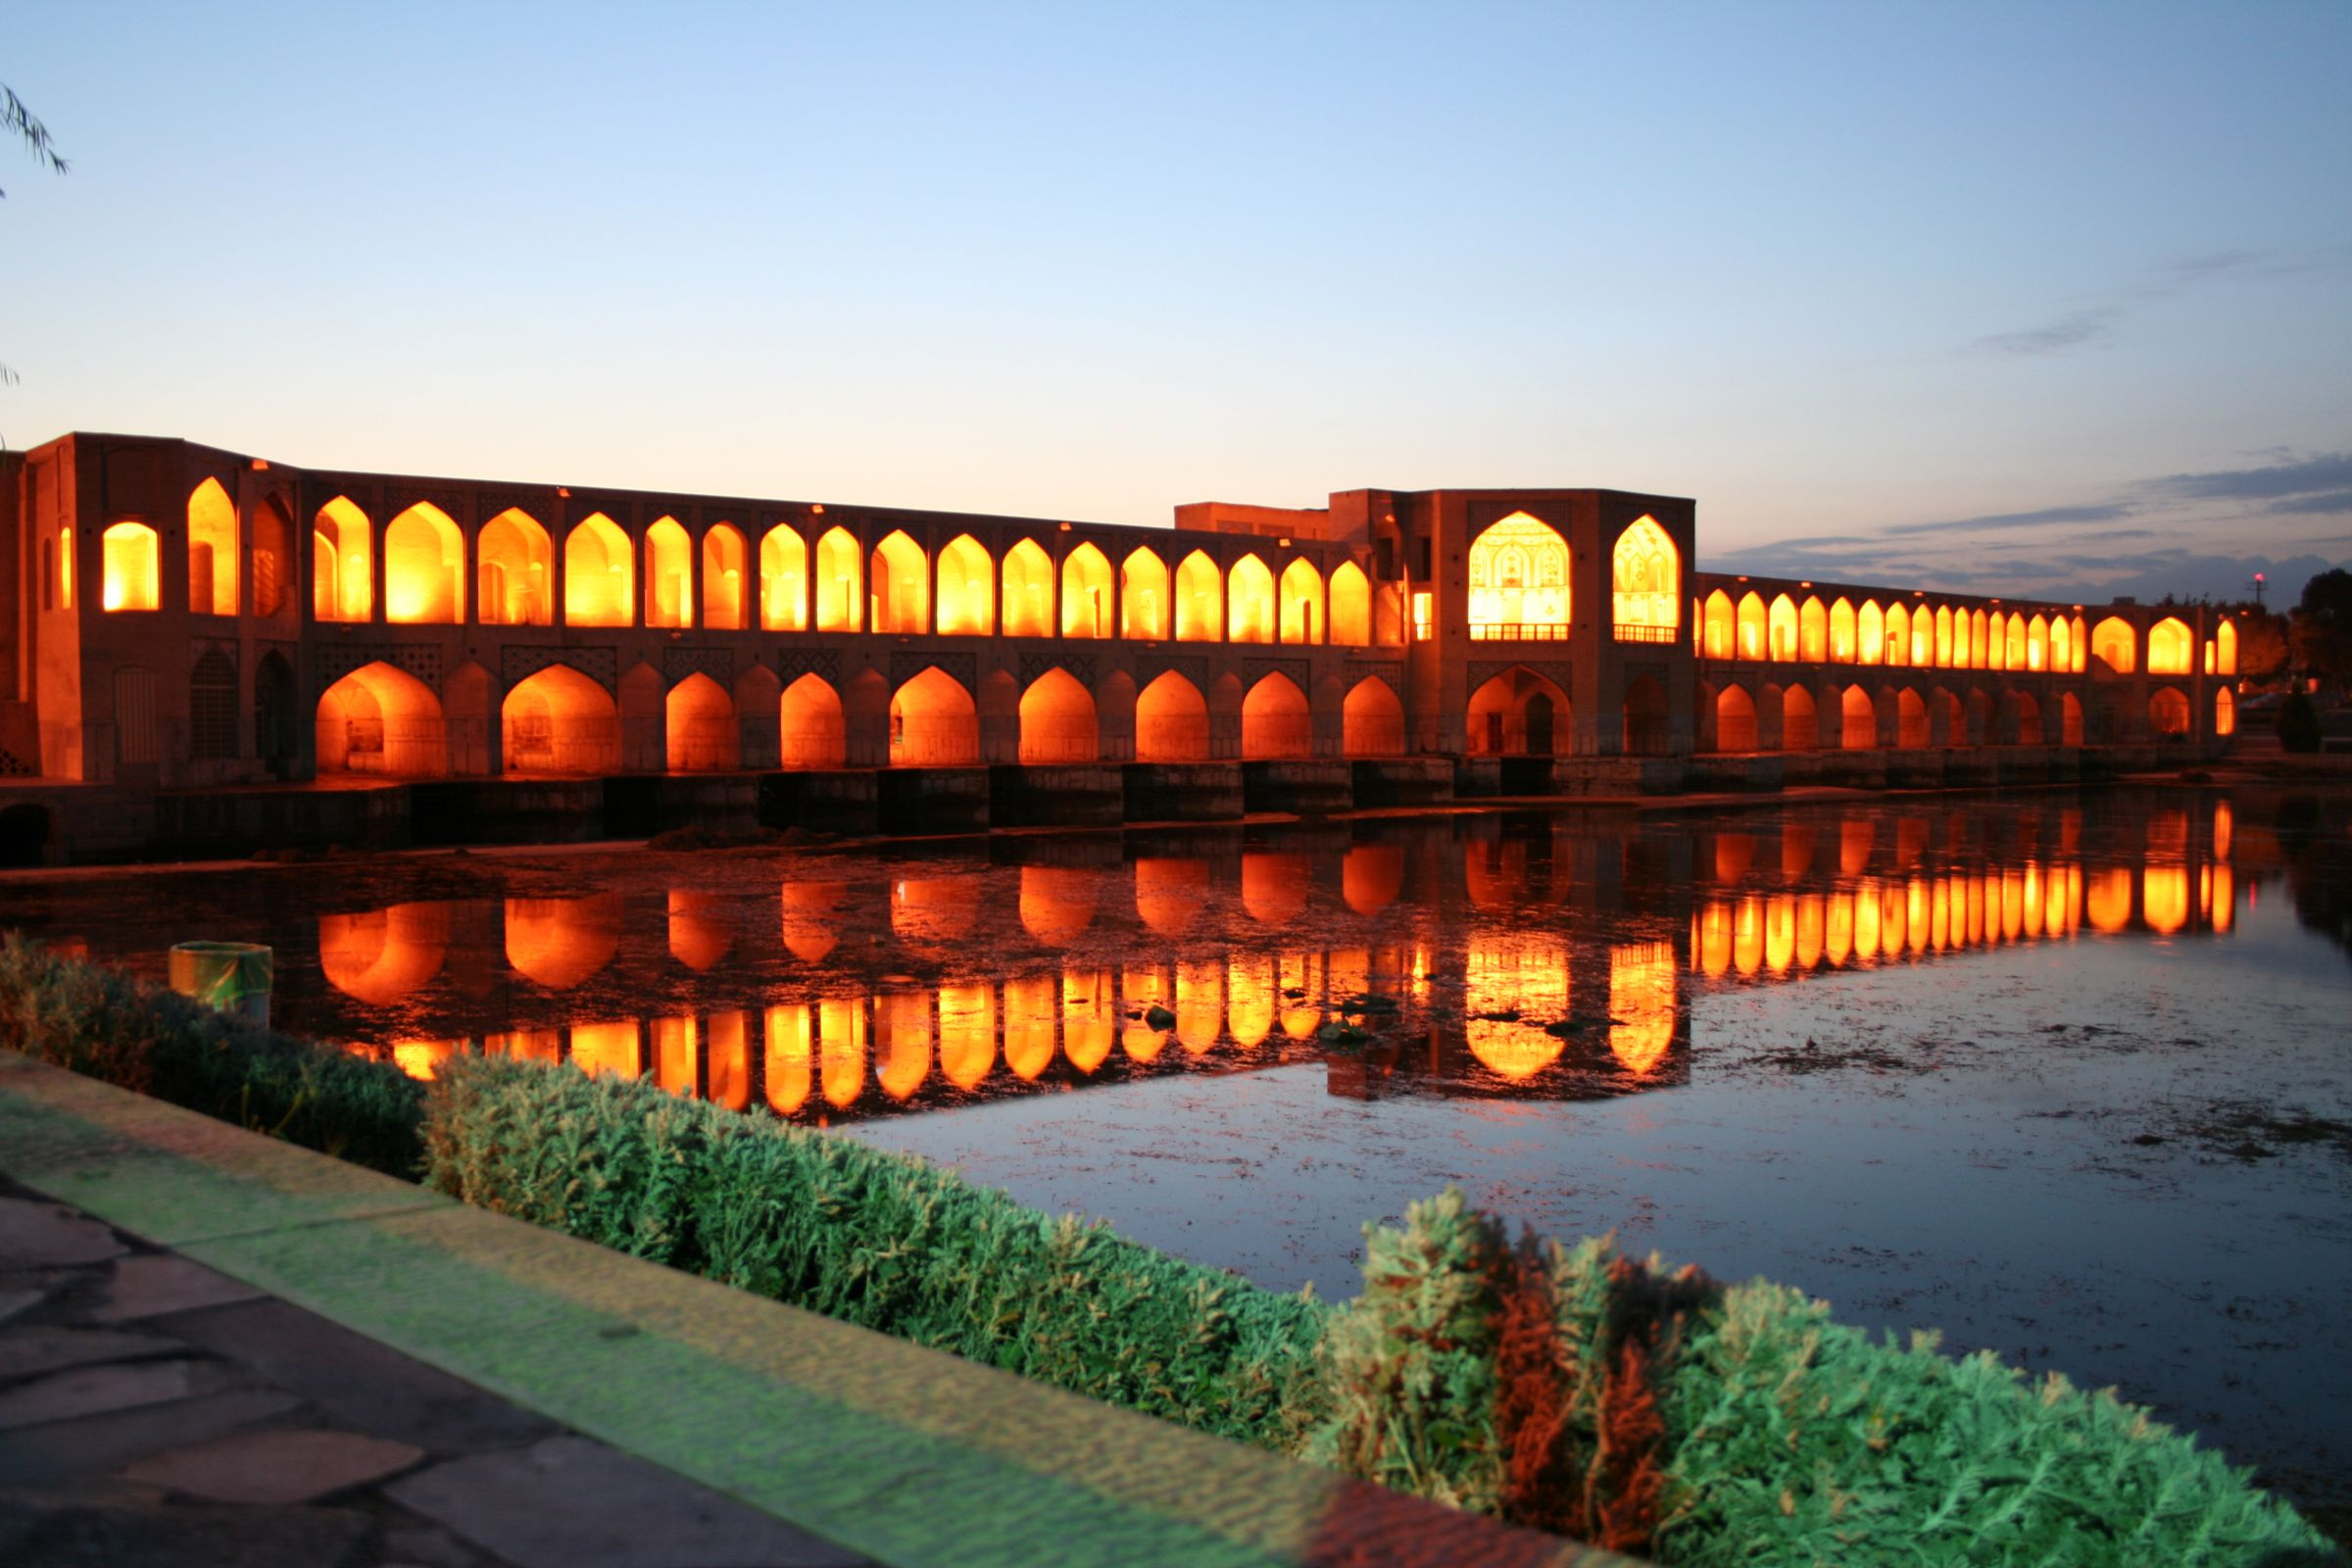 Khaji Brigje at night, Isfahan, Iran